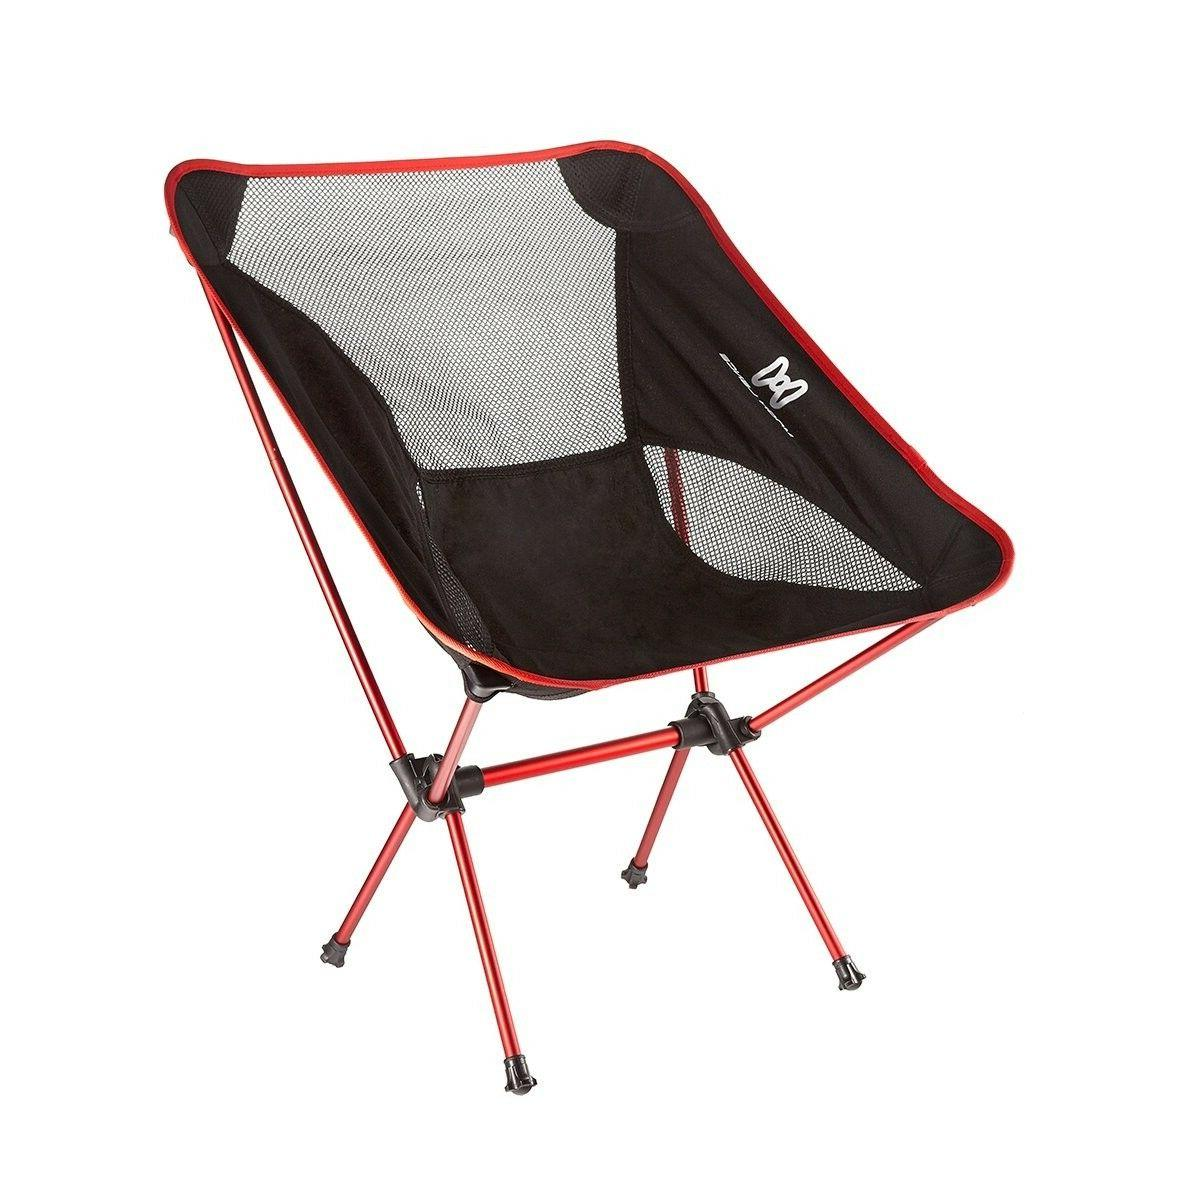 Outdoor Portable Folding Chairs Camping,